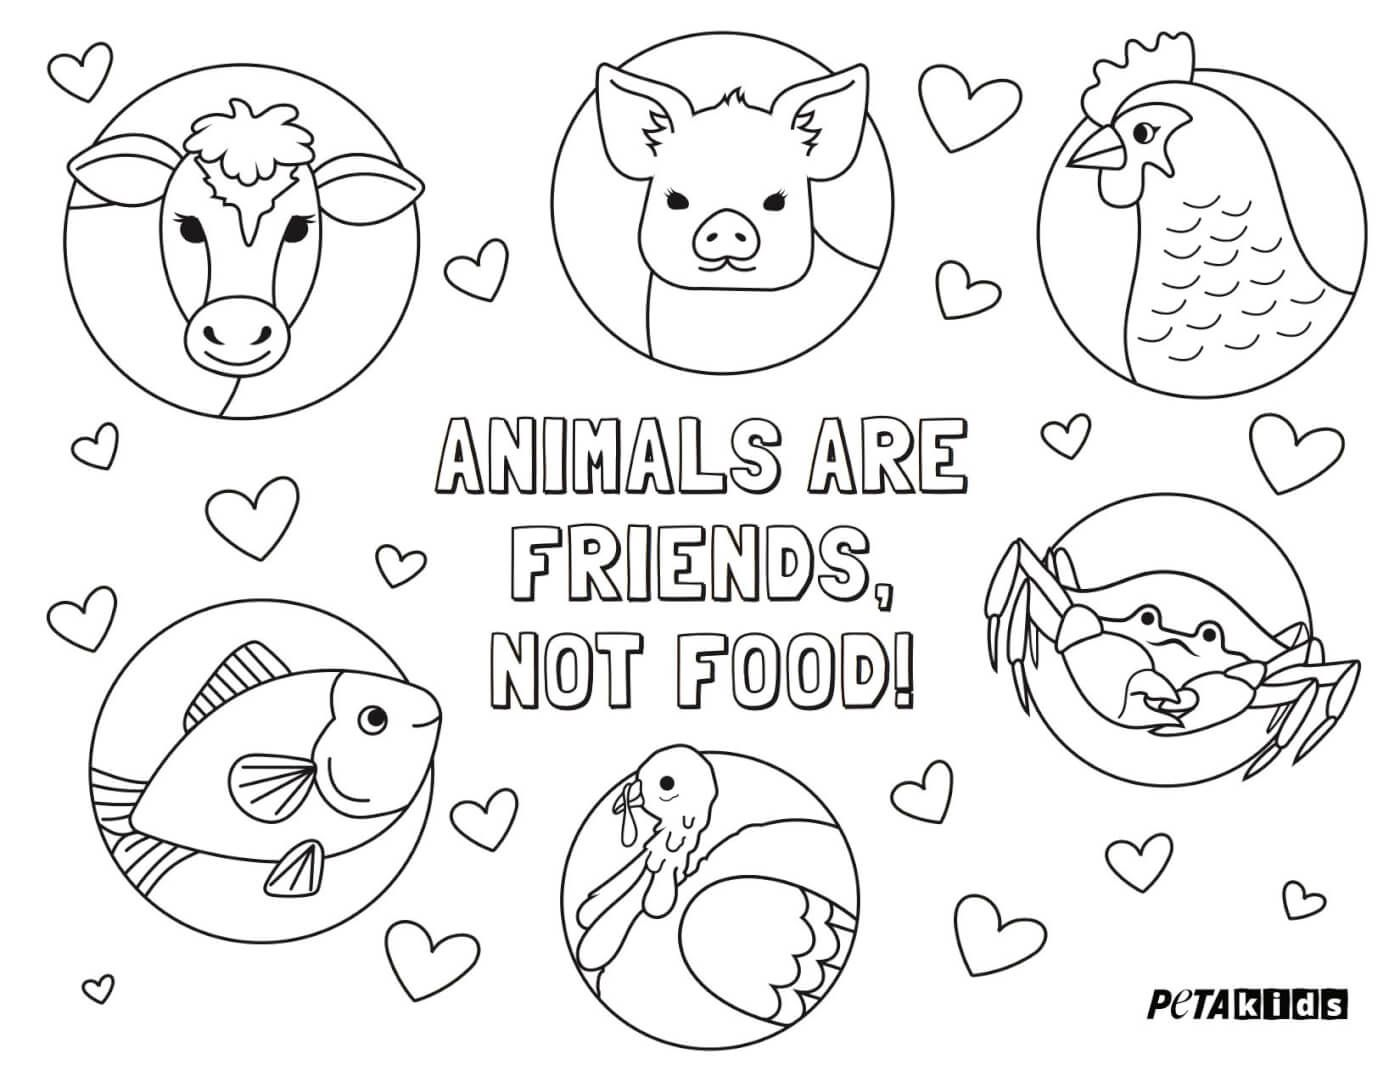 Show Everyone That 'Animals Are Friends, Not Food' With ...